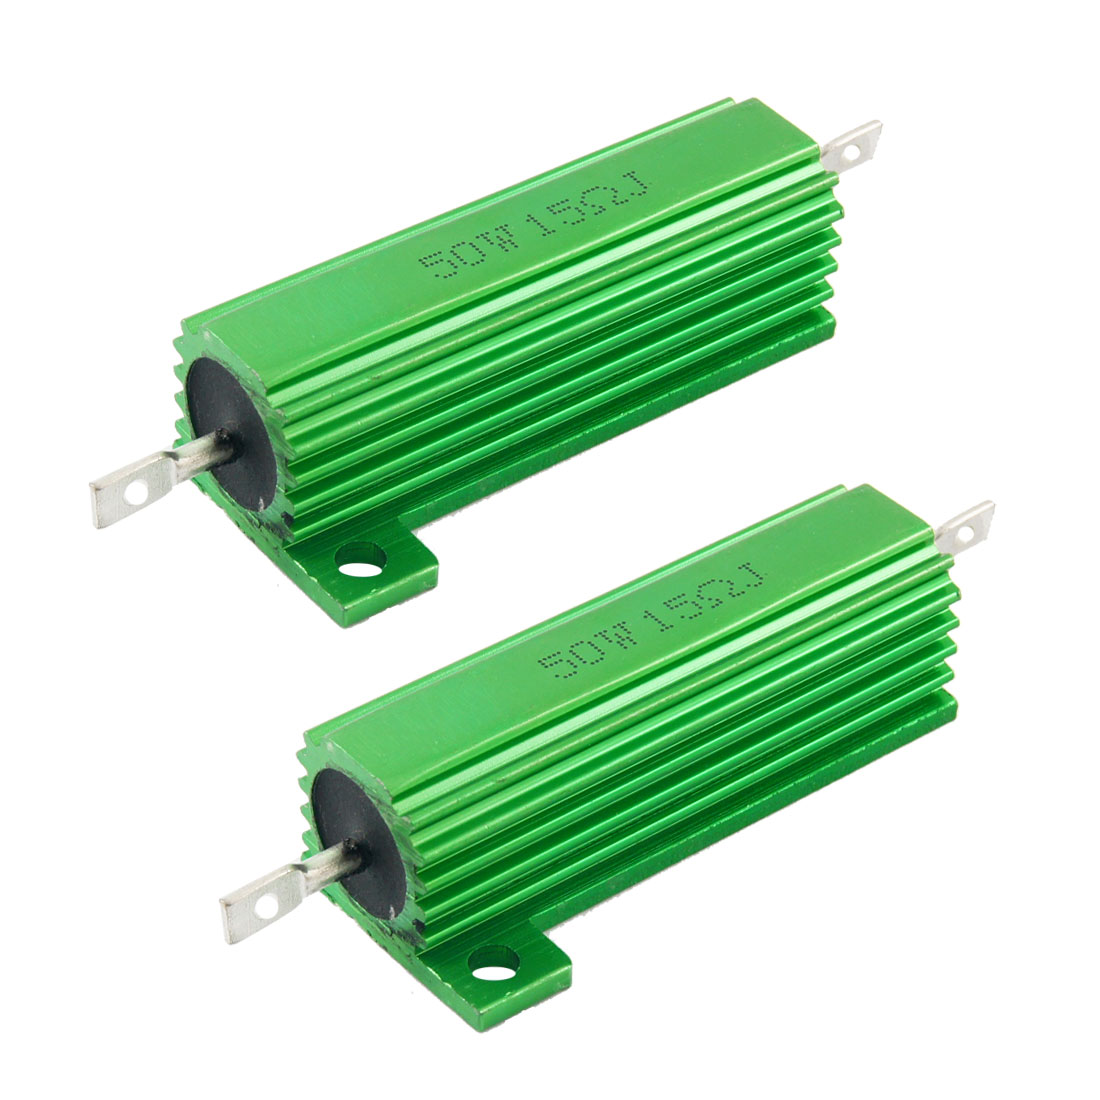 50W-15-Ohm-Screw-Tap-Mounted-Aluminum-Housed-Wirewound-Resistors-2-Pcs